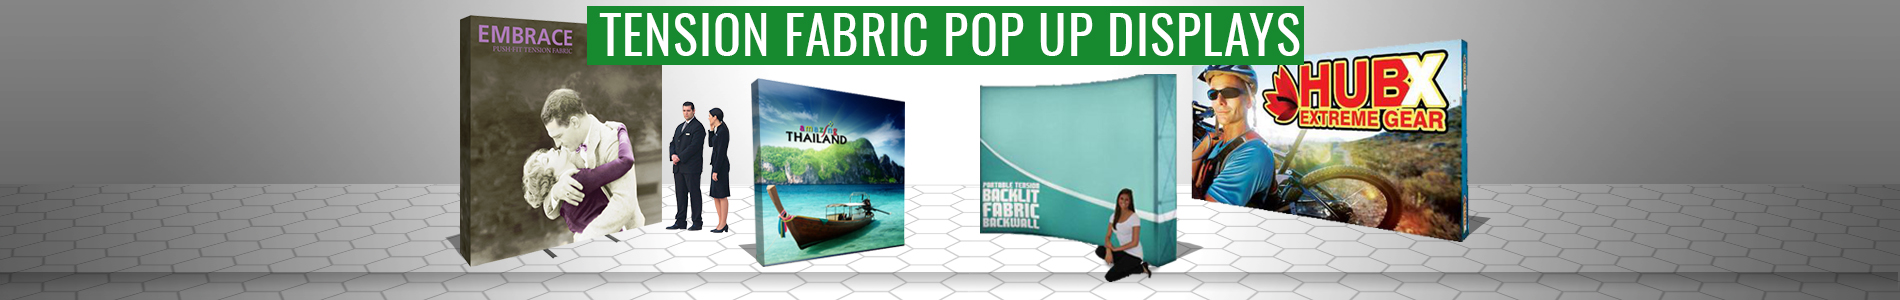 pop up displays tension fabric